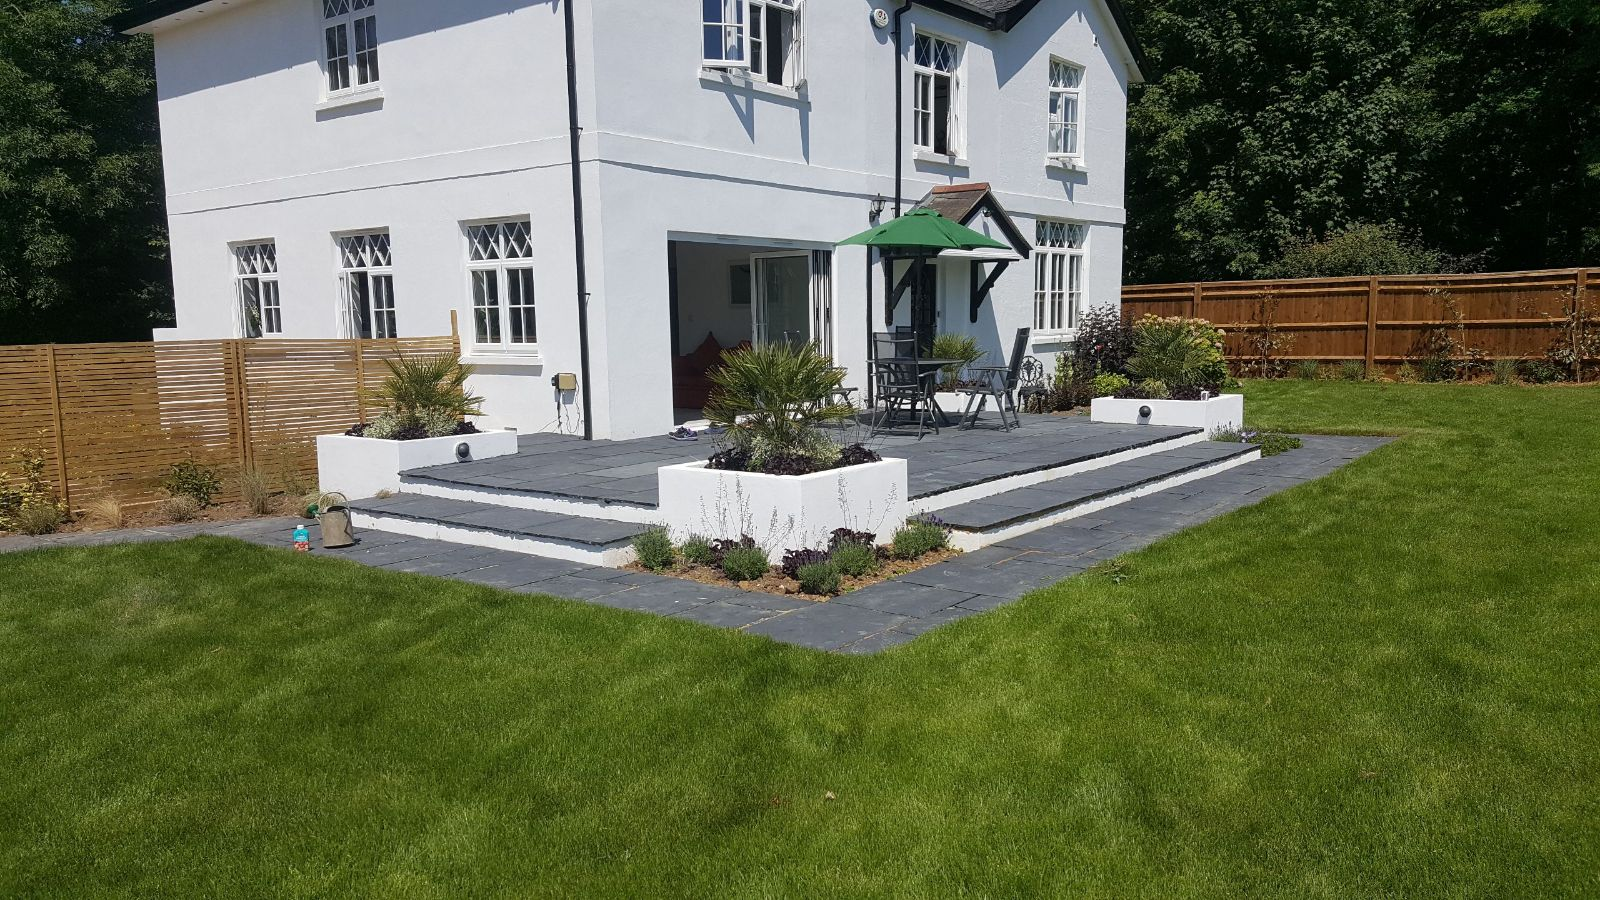 garnden design in horsham with stand out patio